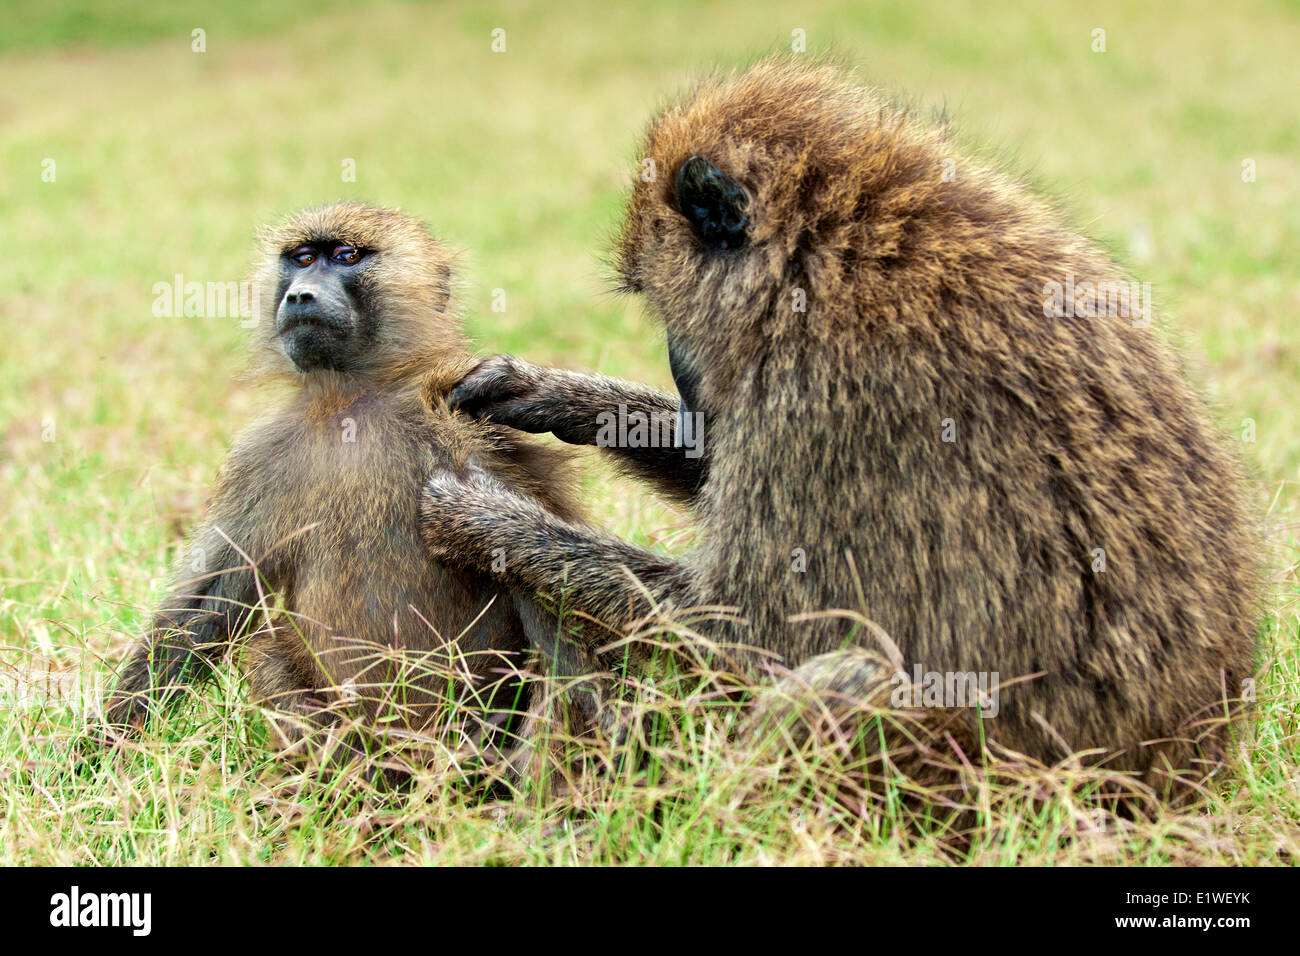 Olive baboons (papio anubis) grooming each other, Kenya, East Africa Stock Photo